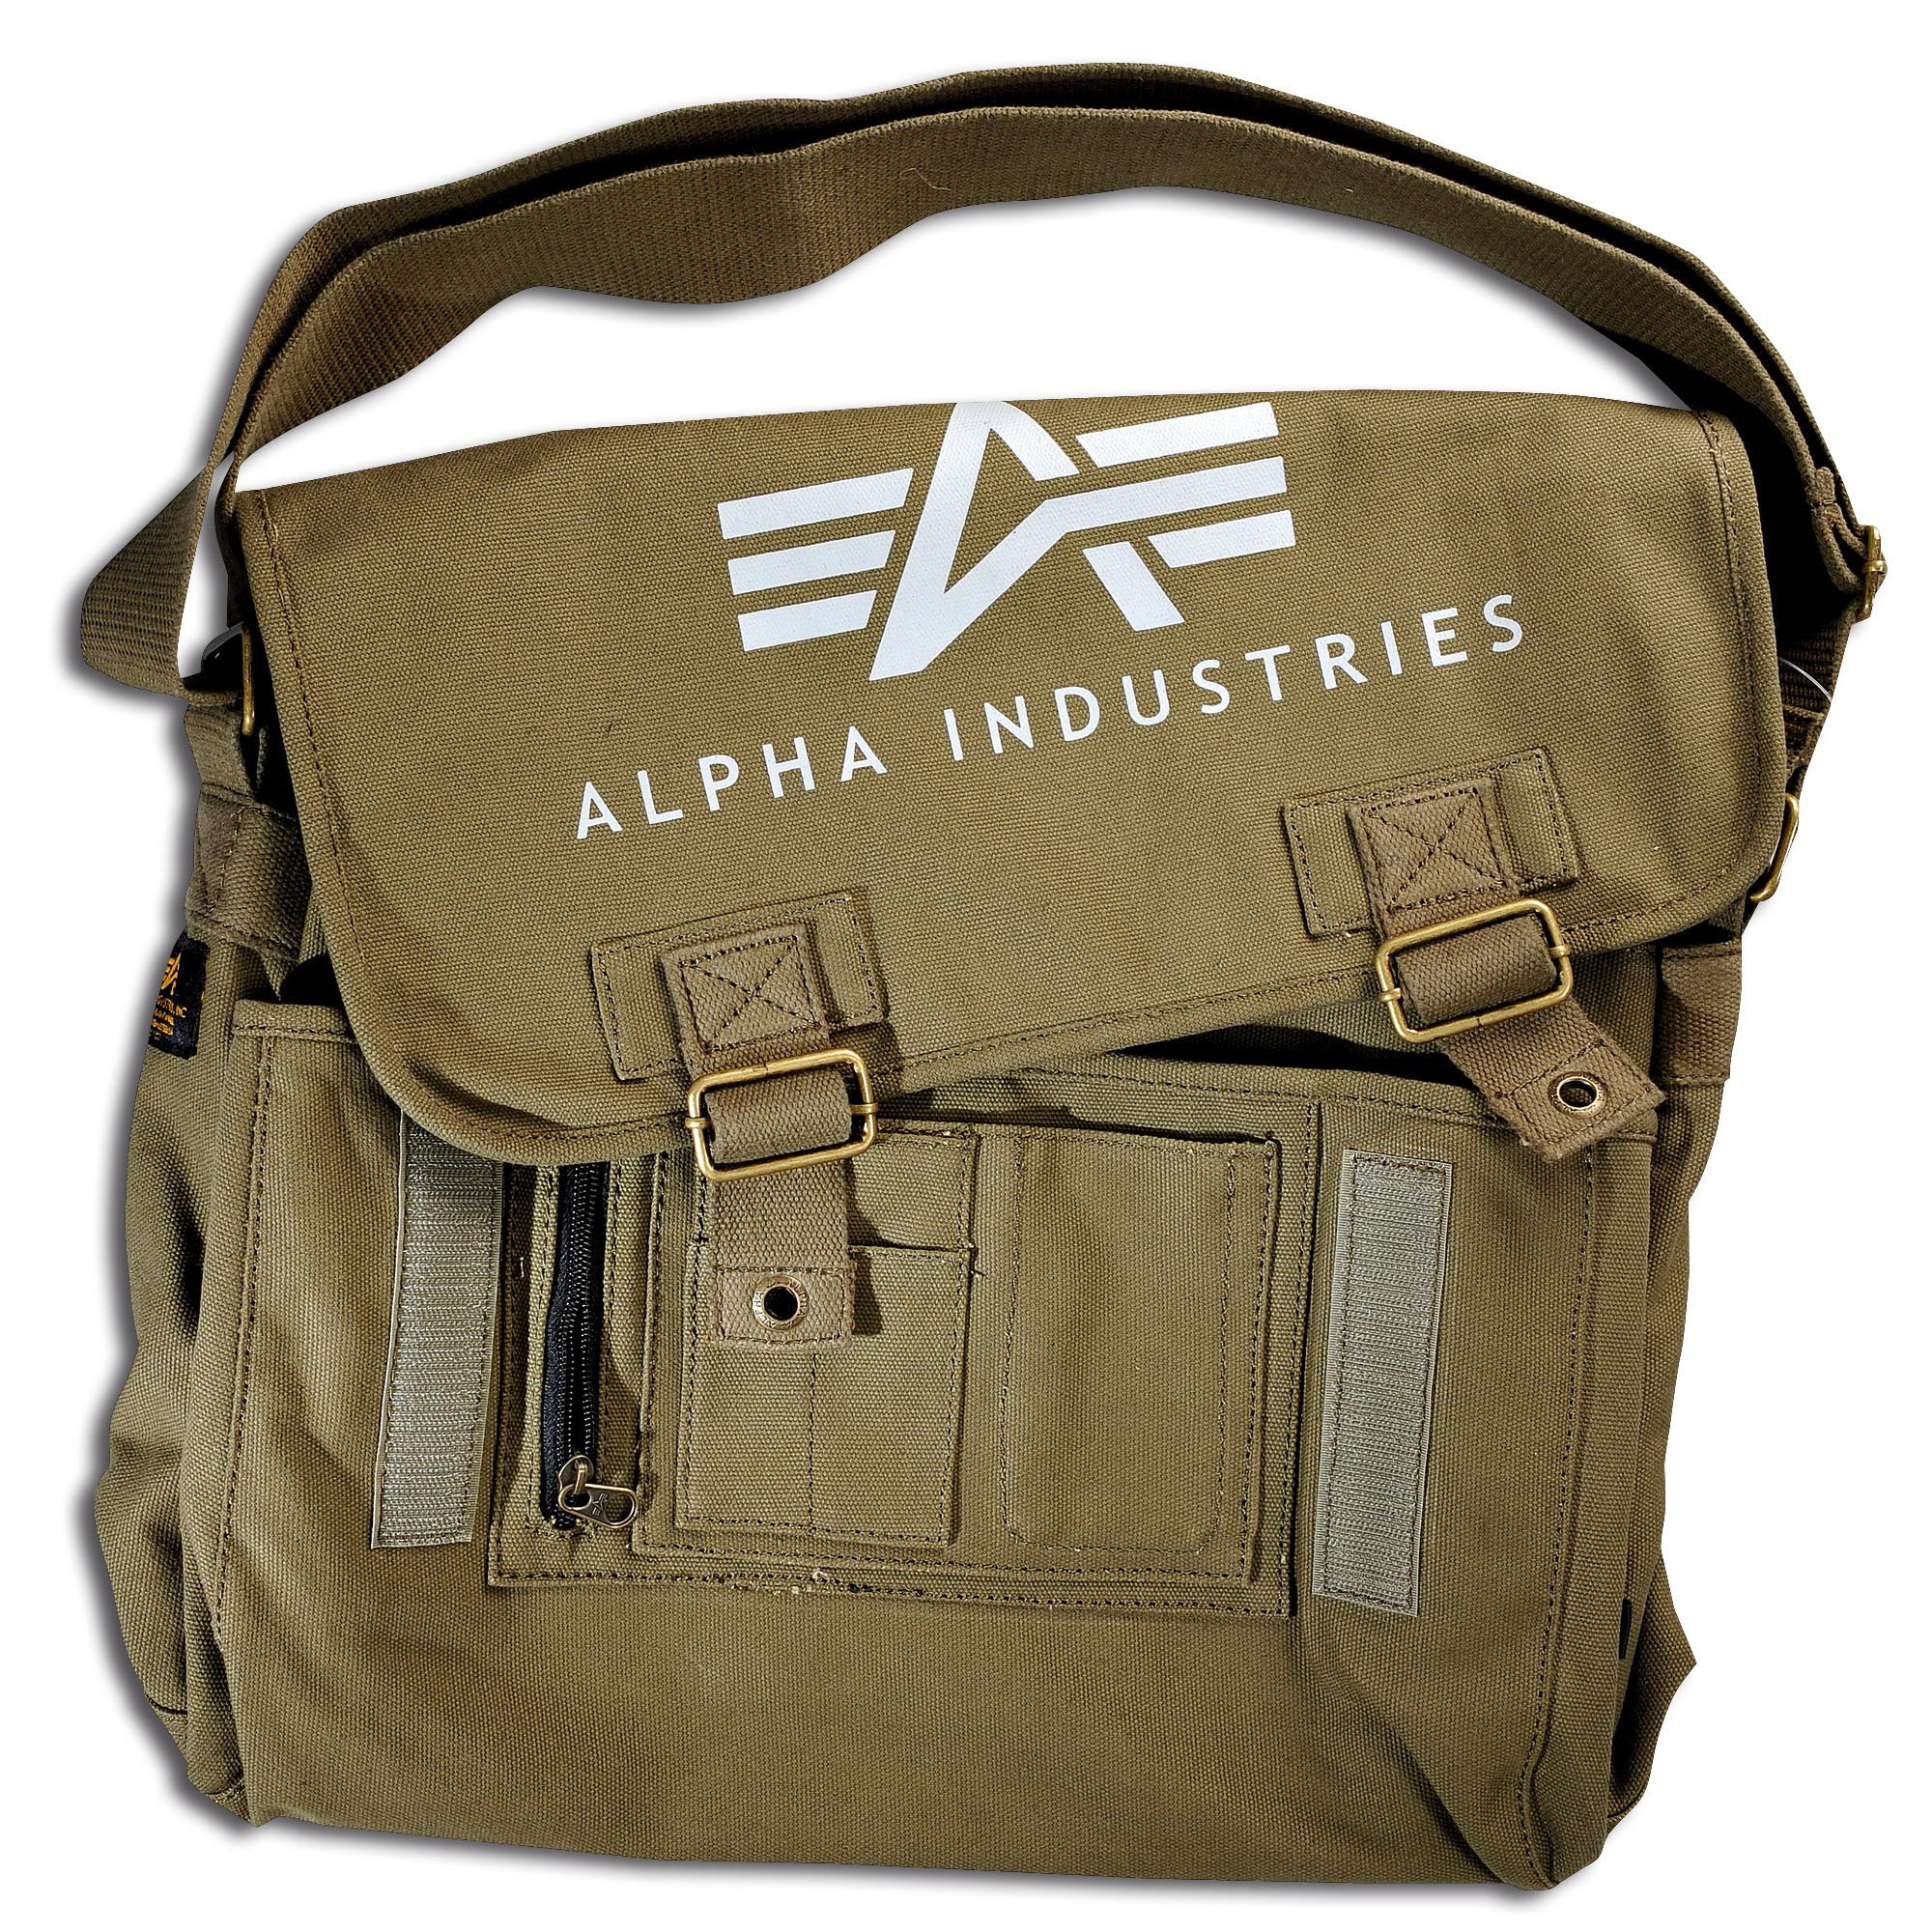 Bolsa bandolera Alpha Industries Big A Canvas Courier verde oliv